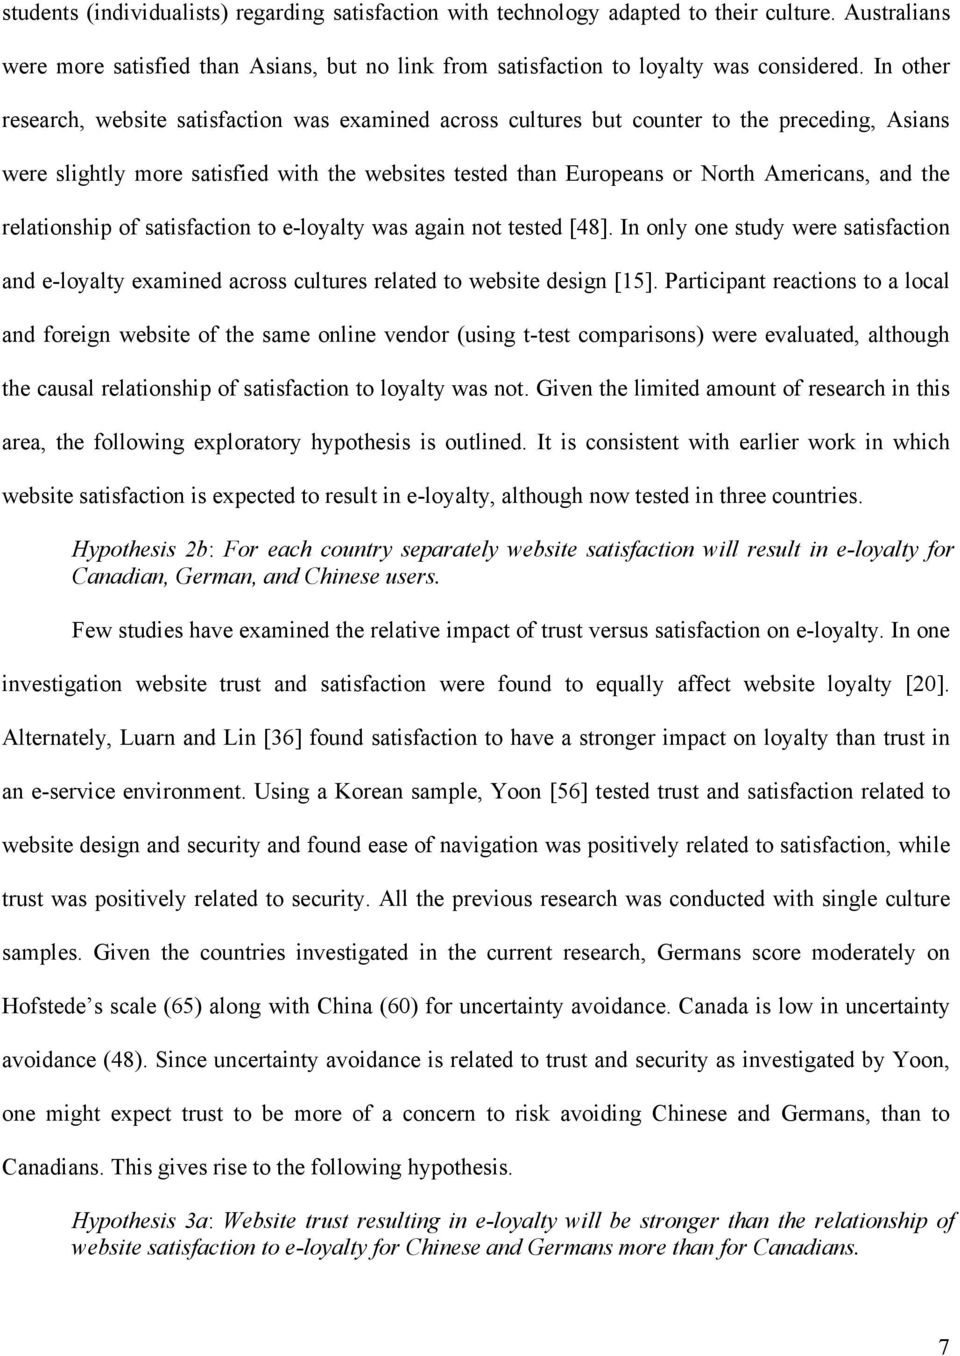 the relationship of satisfaction to e-loyalty was again not tested [48]. In only one study were satisfaction and e-loyalty examined across cultures related to website design [15].